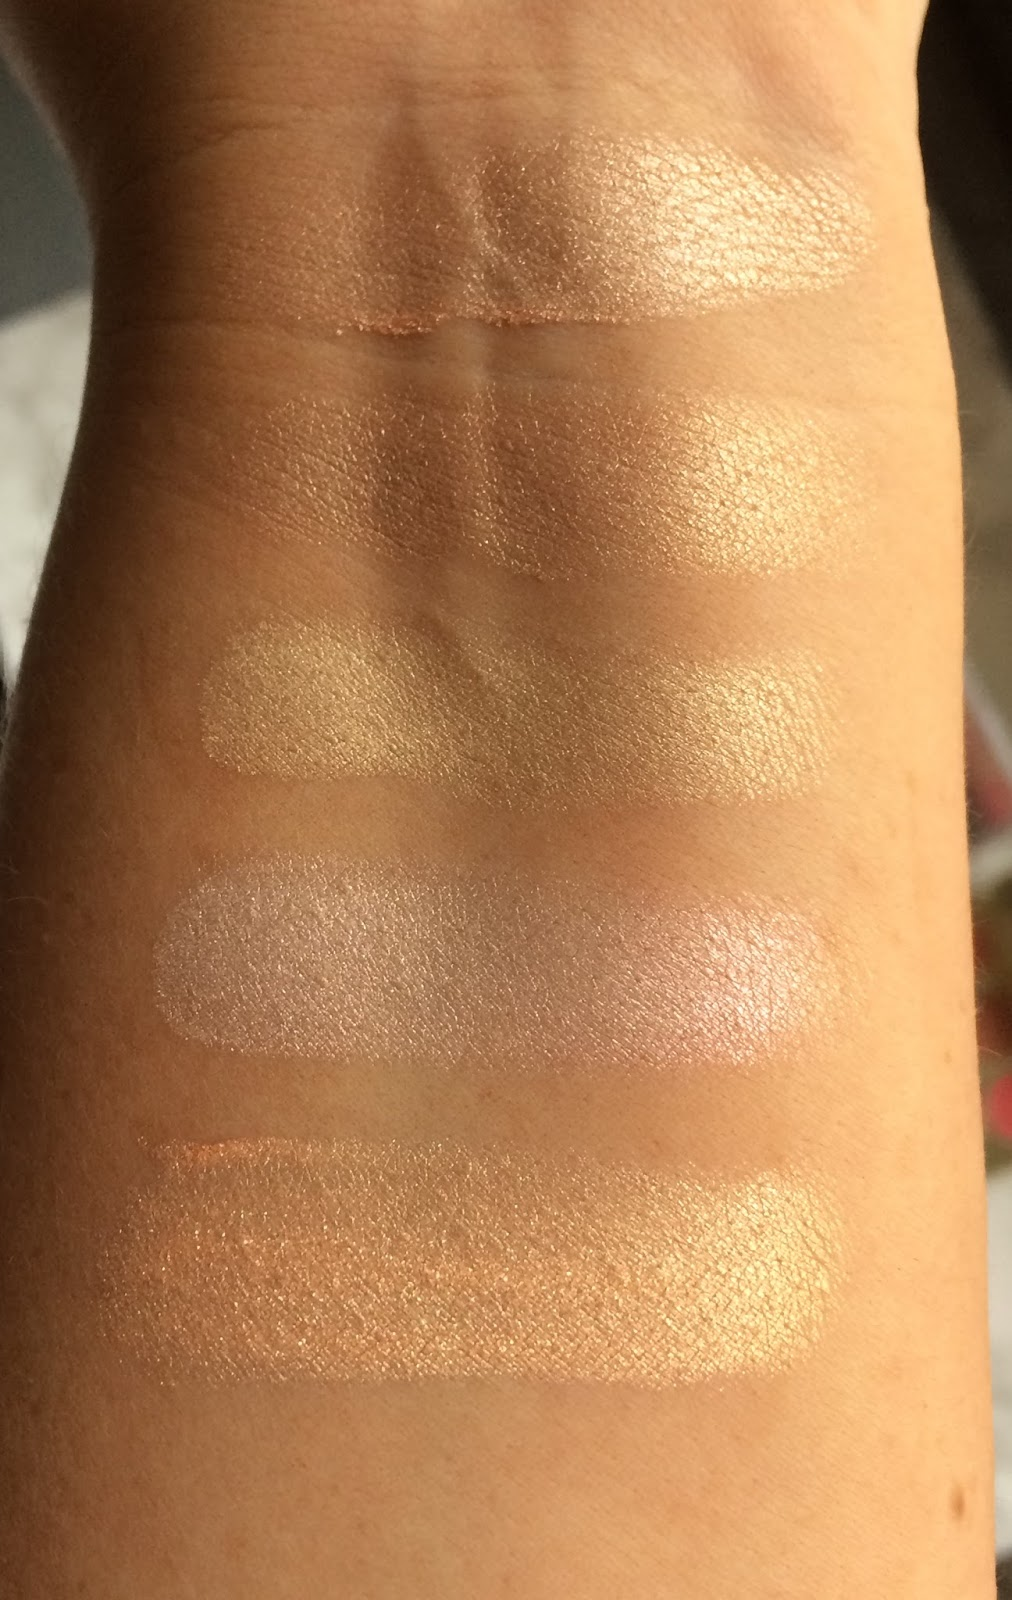 Champagne Pop, MaryLou Manizer, DIOR, MAC Soft & Gentle, Make Up Forever Golden Pink swatches